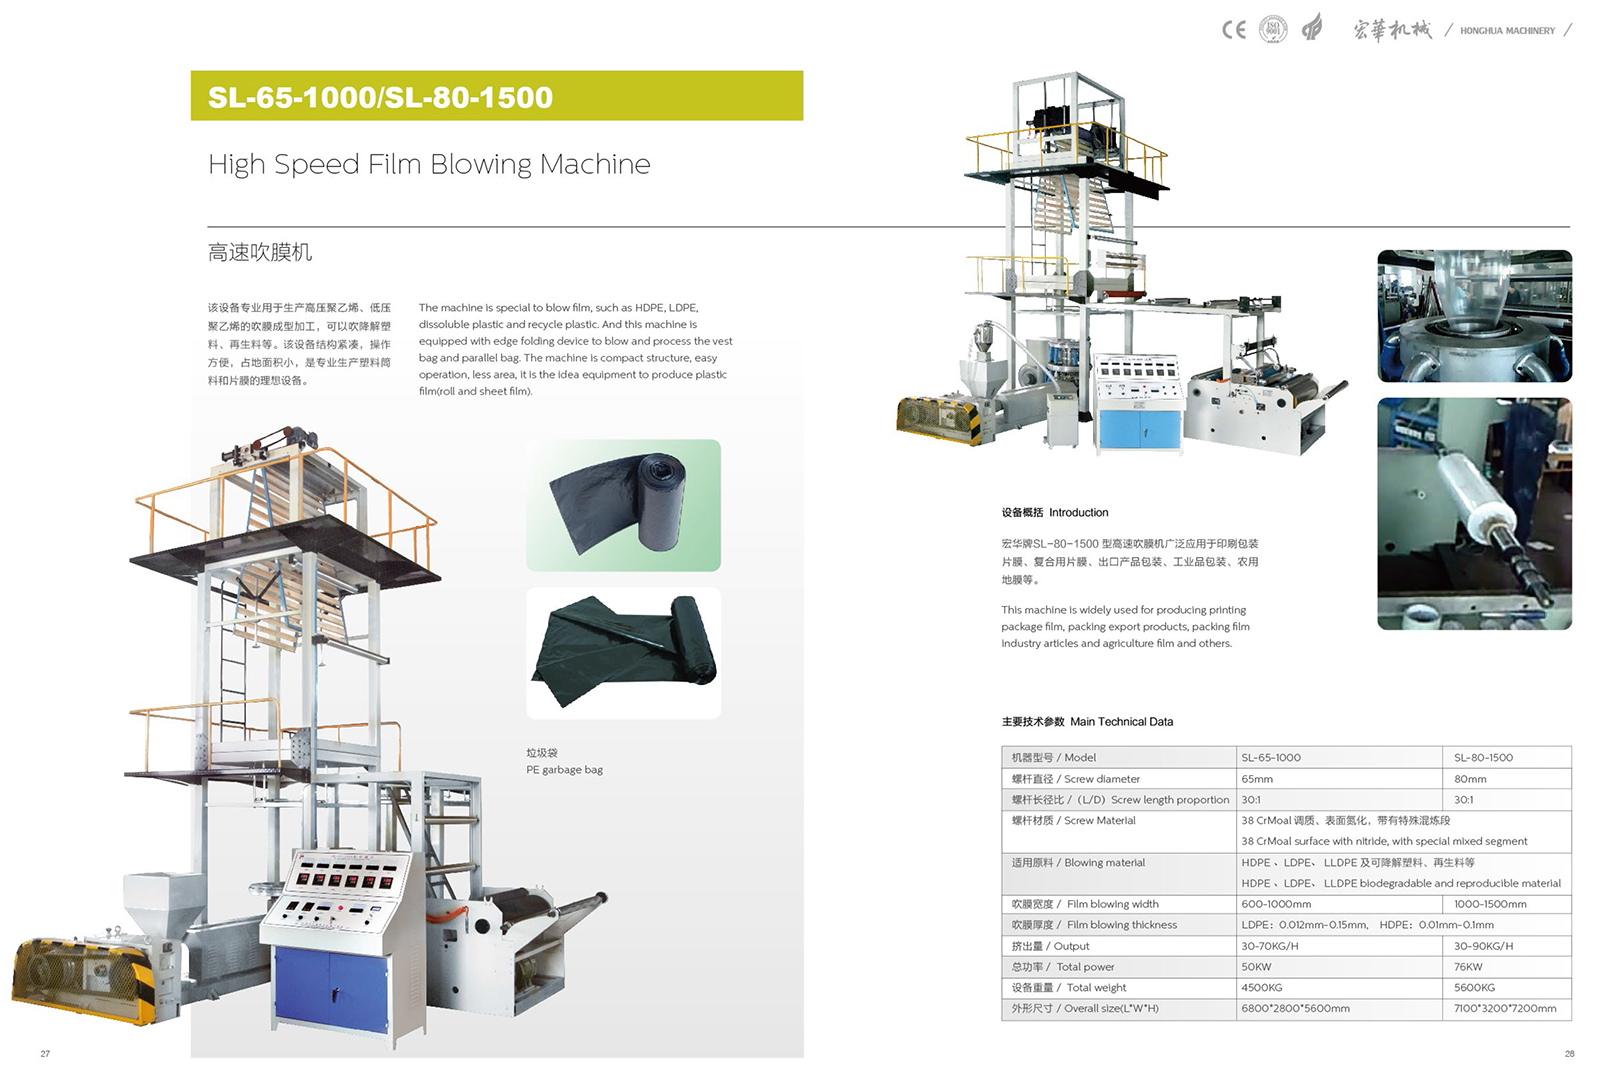 SL-65-1000 High Speed Film Blowing Machine